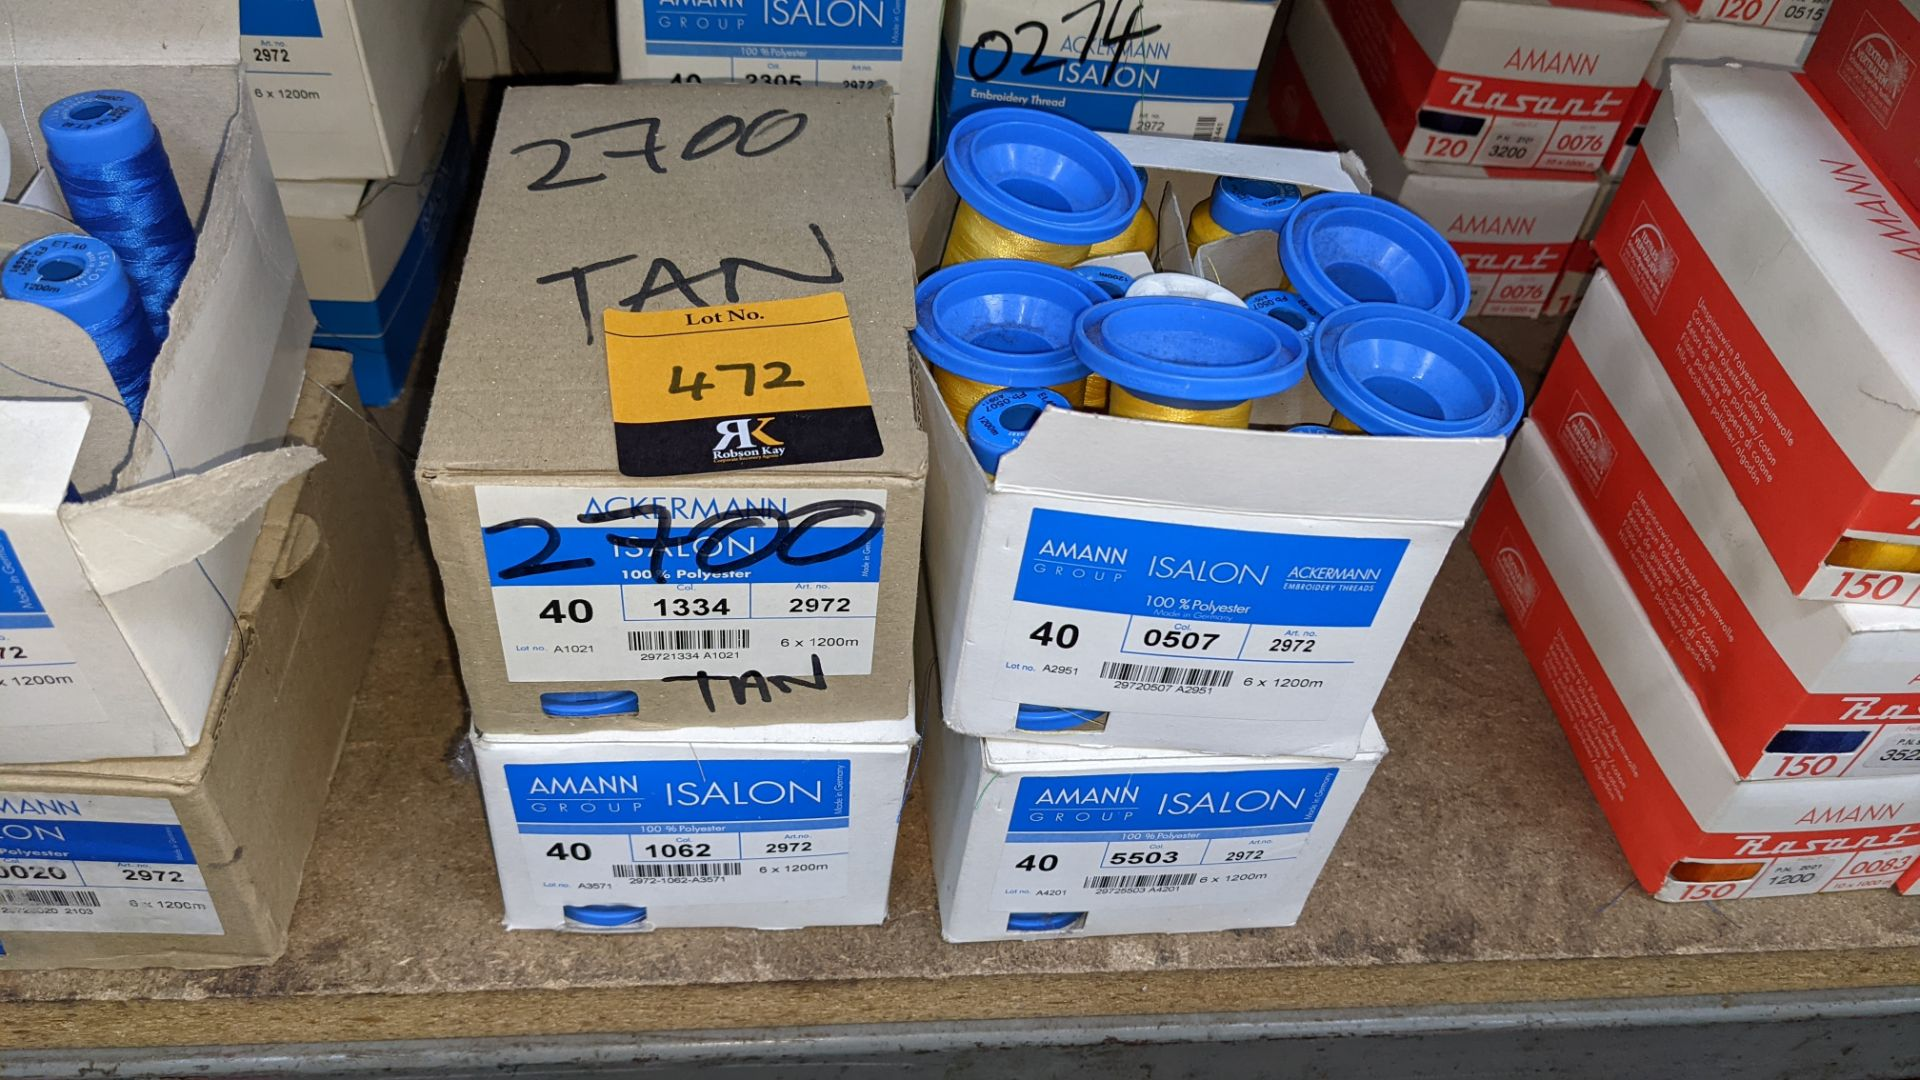 14 boxes of Amann Group ISALON embroidery thread - Image 3 of 6